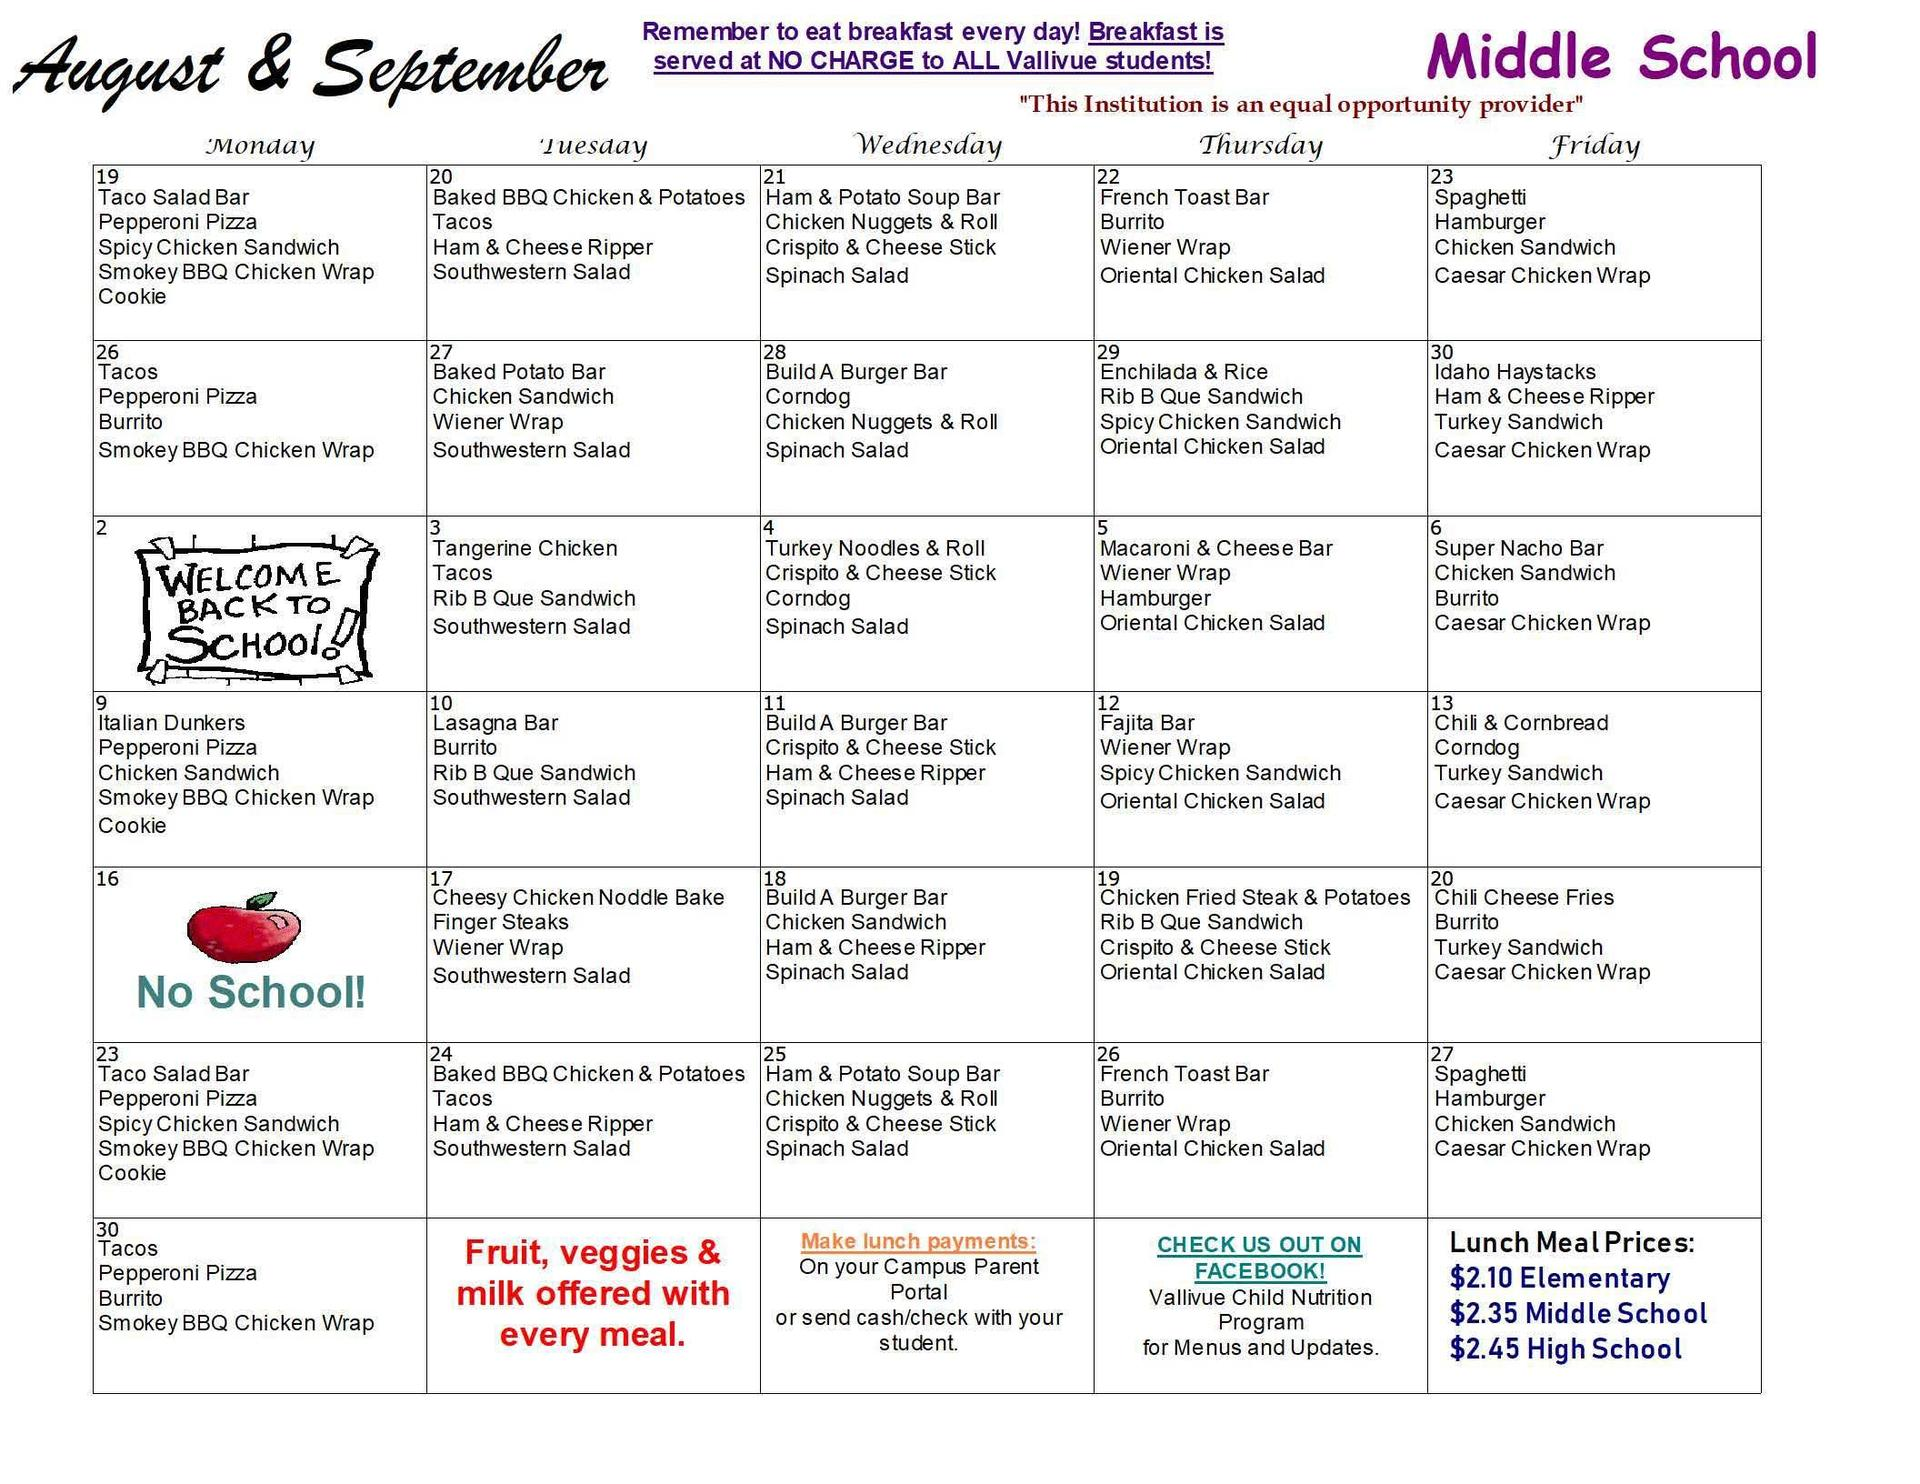 AUGUST/SEPTEMBER MS LUNCH MENU